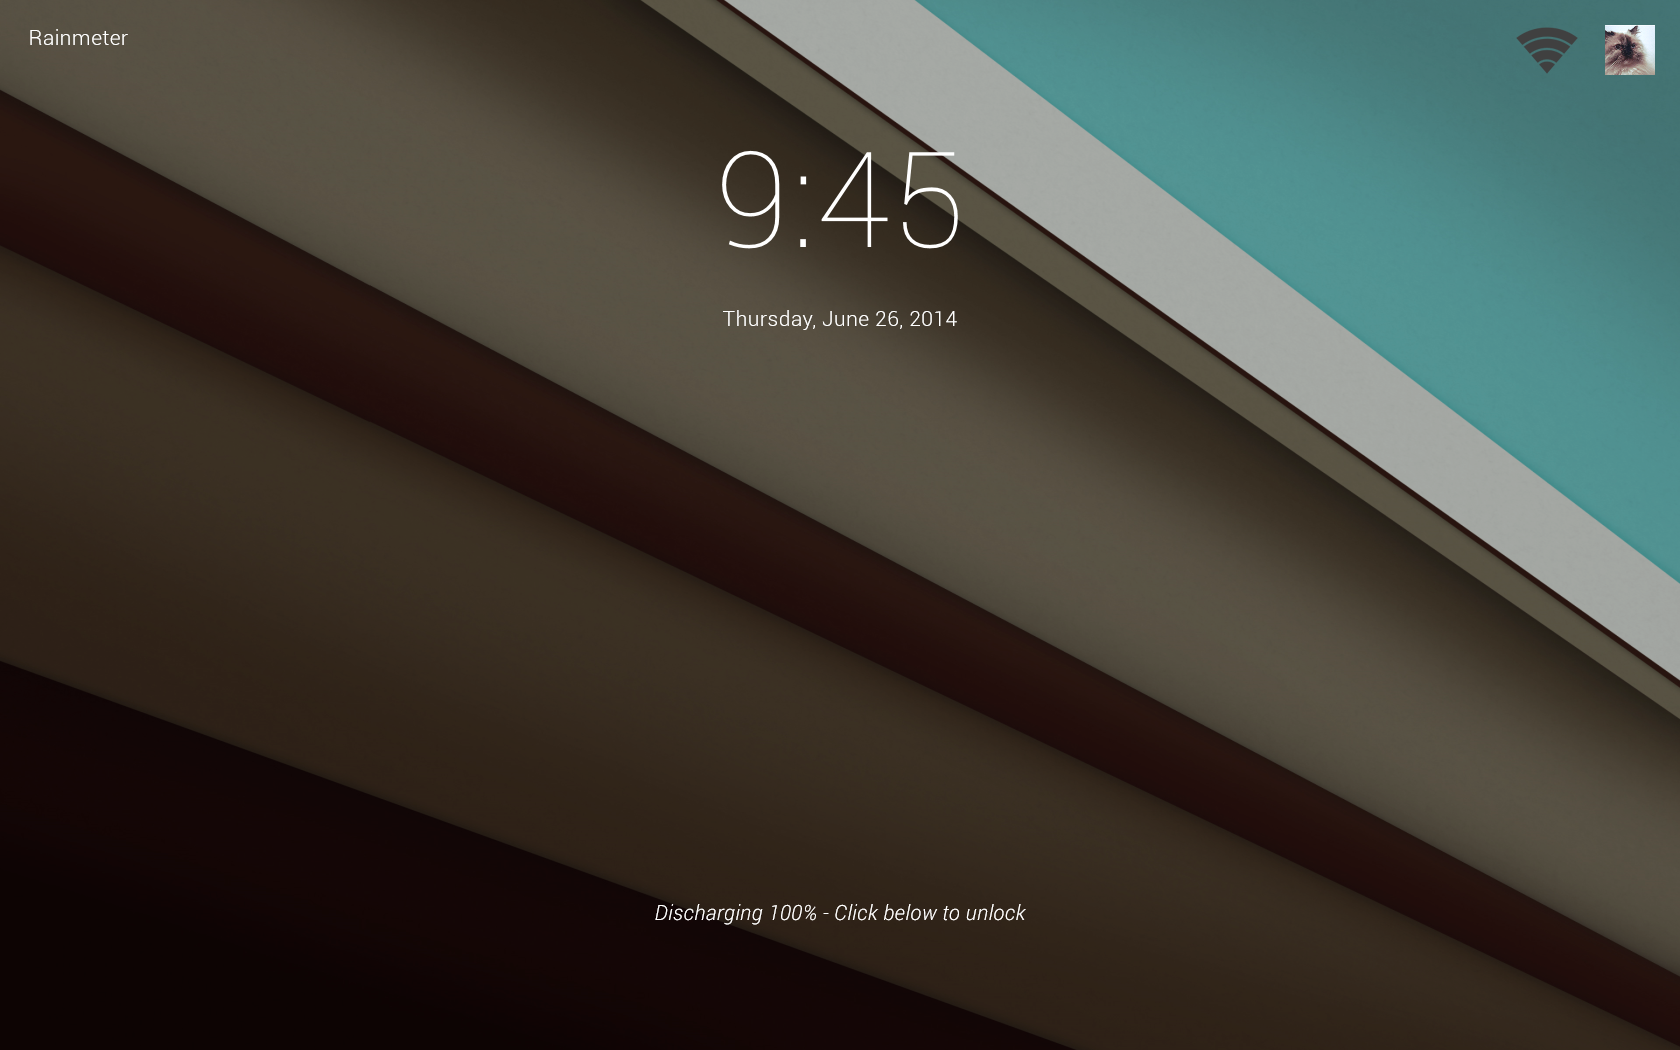 WIP] Android L for Rainmeter   Lock Screen by ScoobSTi 1680x1050